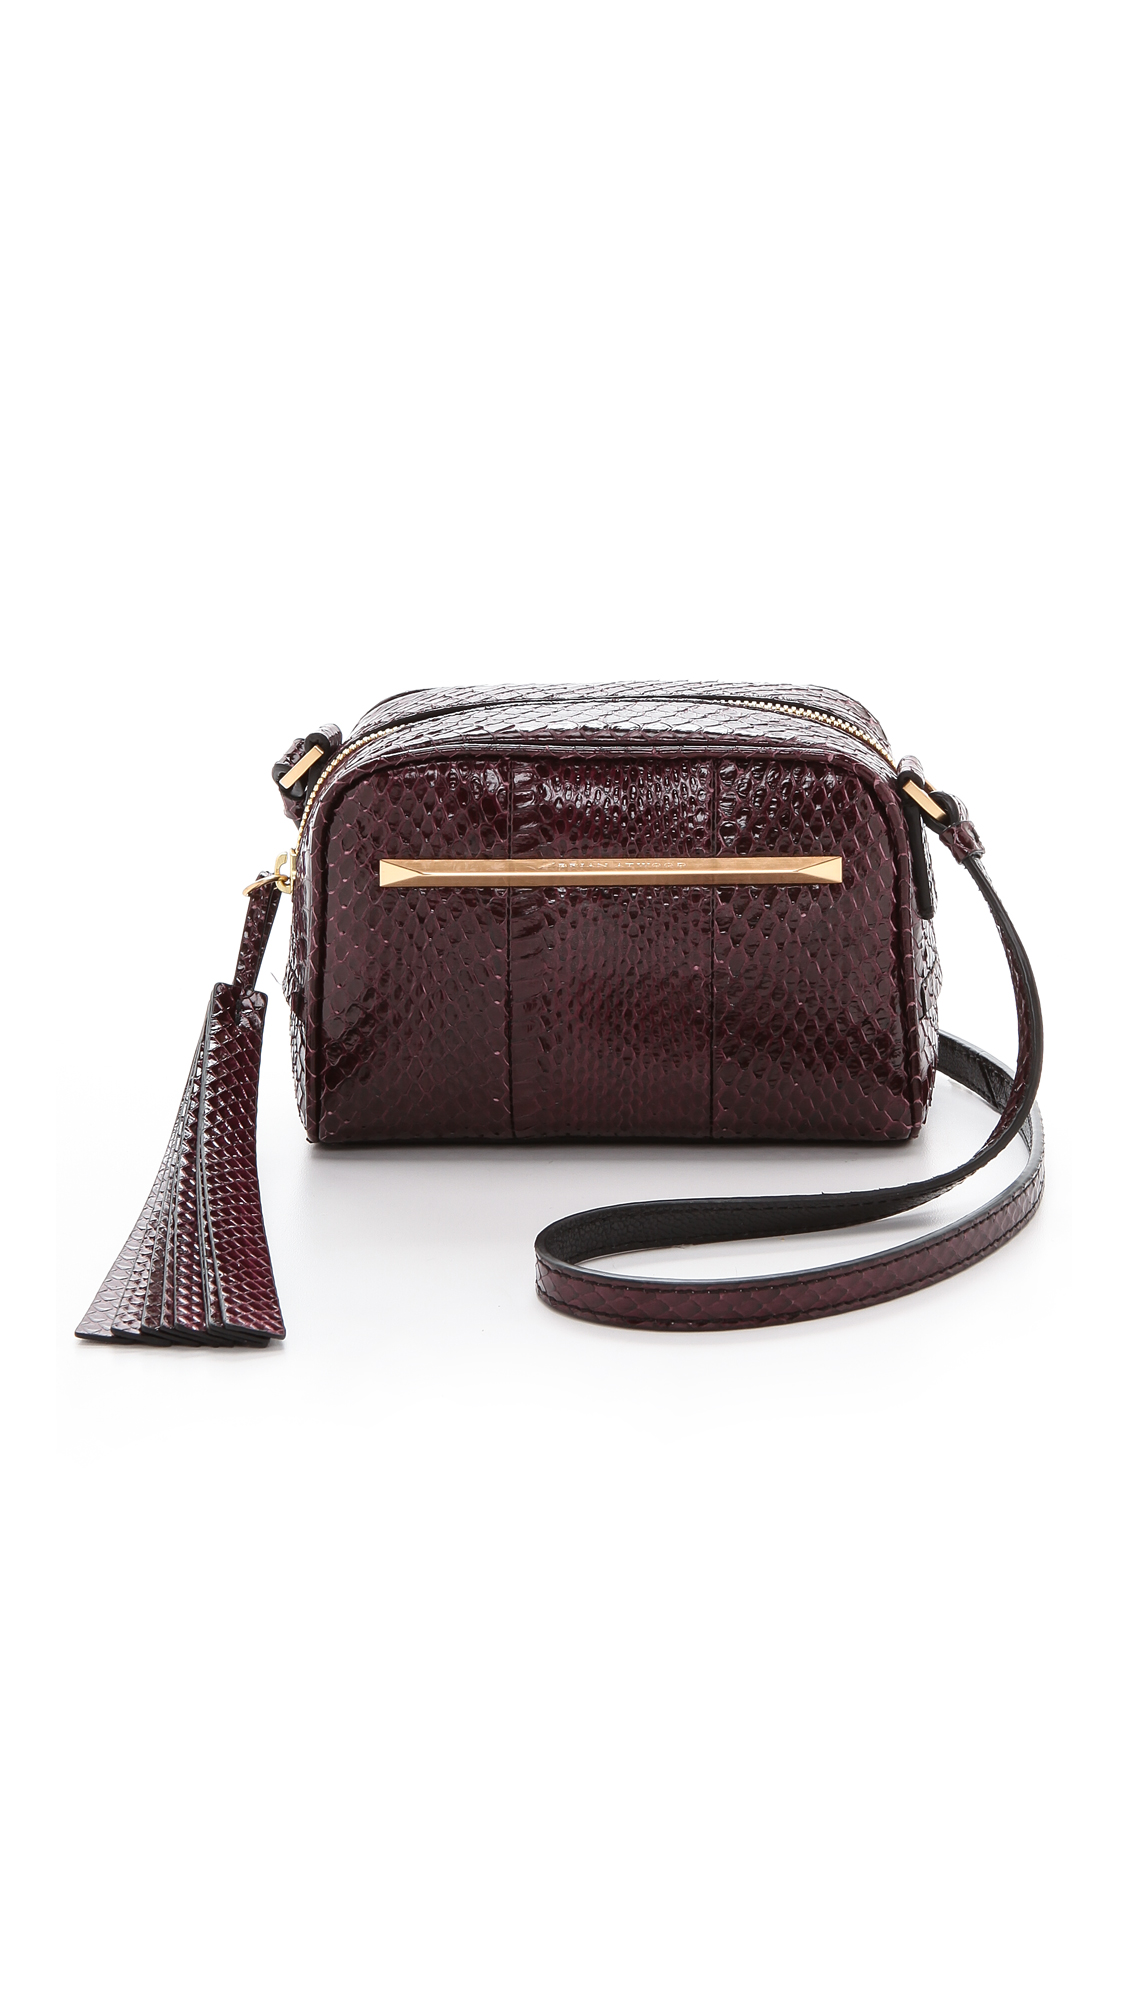 Brian Atwood Mini Cross Body Bag